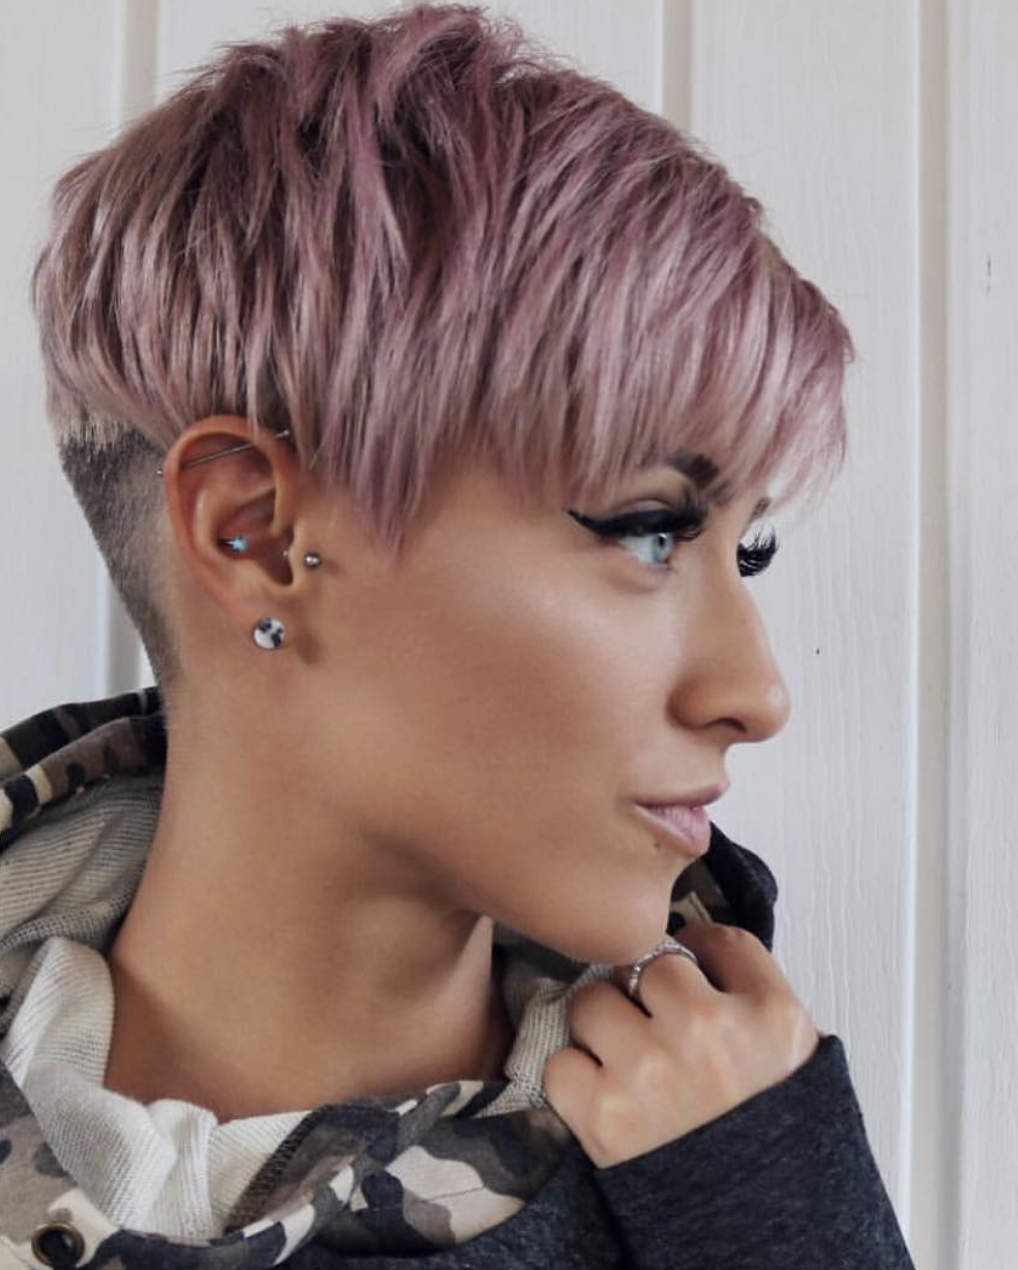 30 Best Pixie Short Haircuts Gallery 2019 Latesthairstylepedia Com